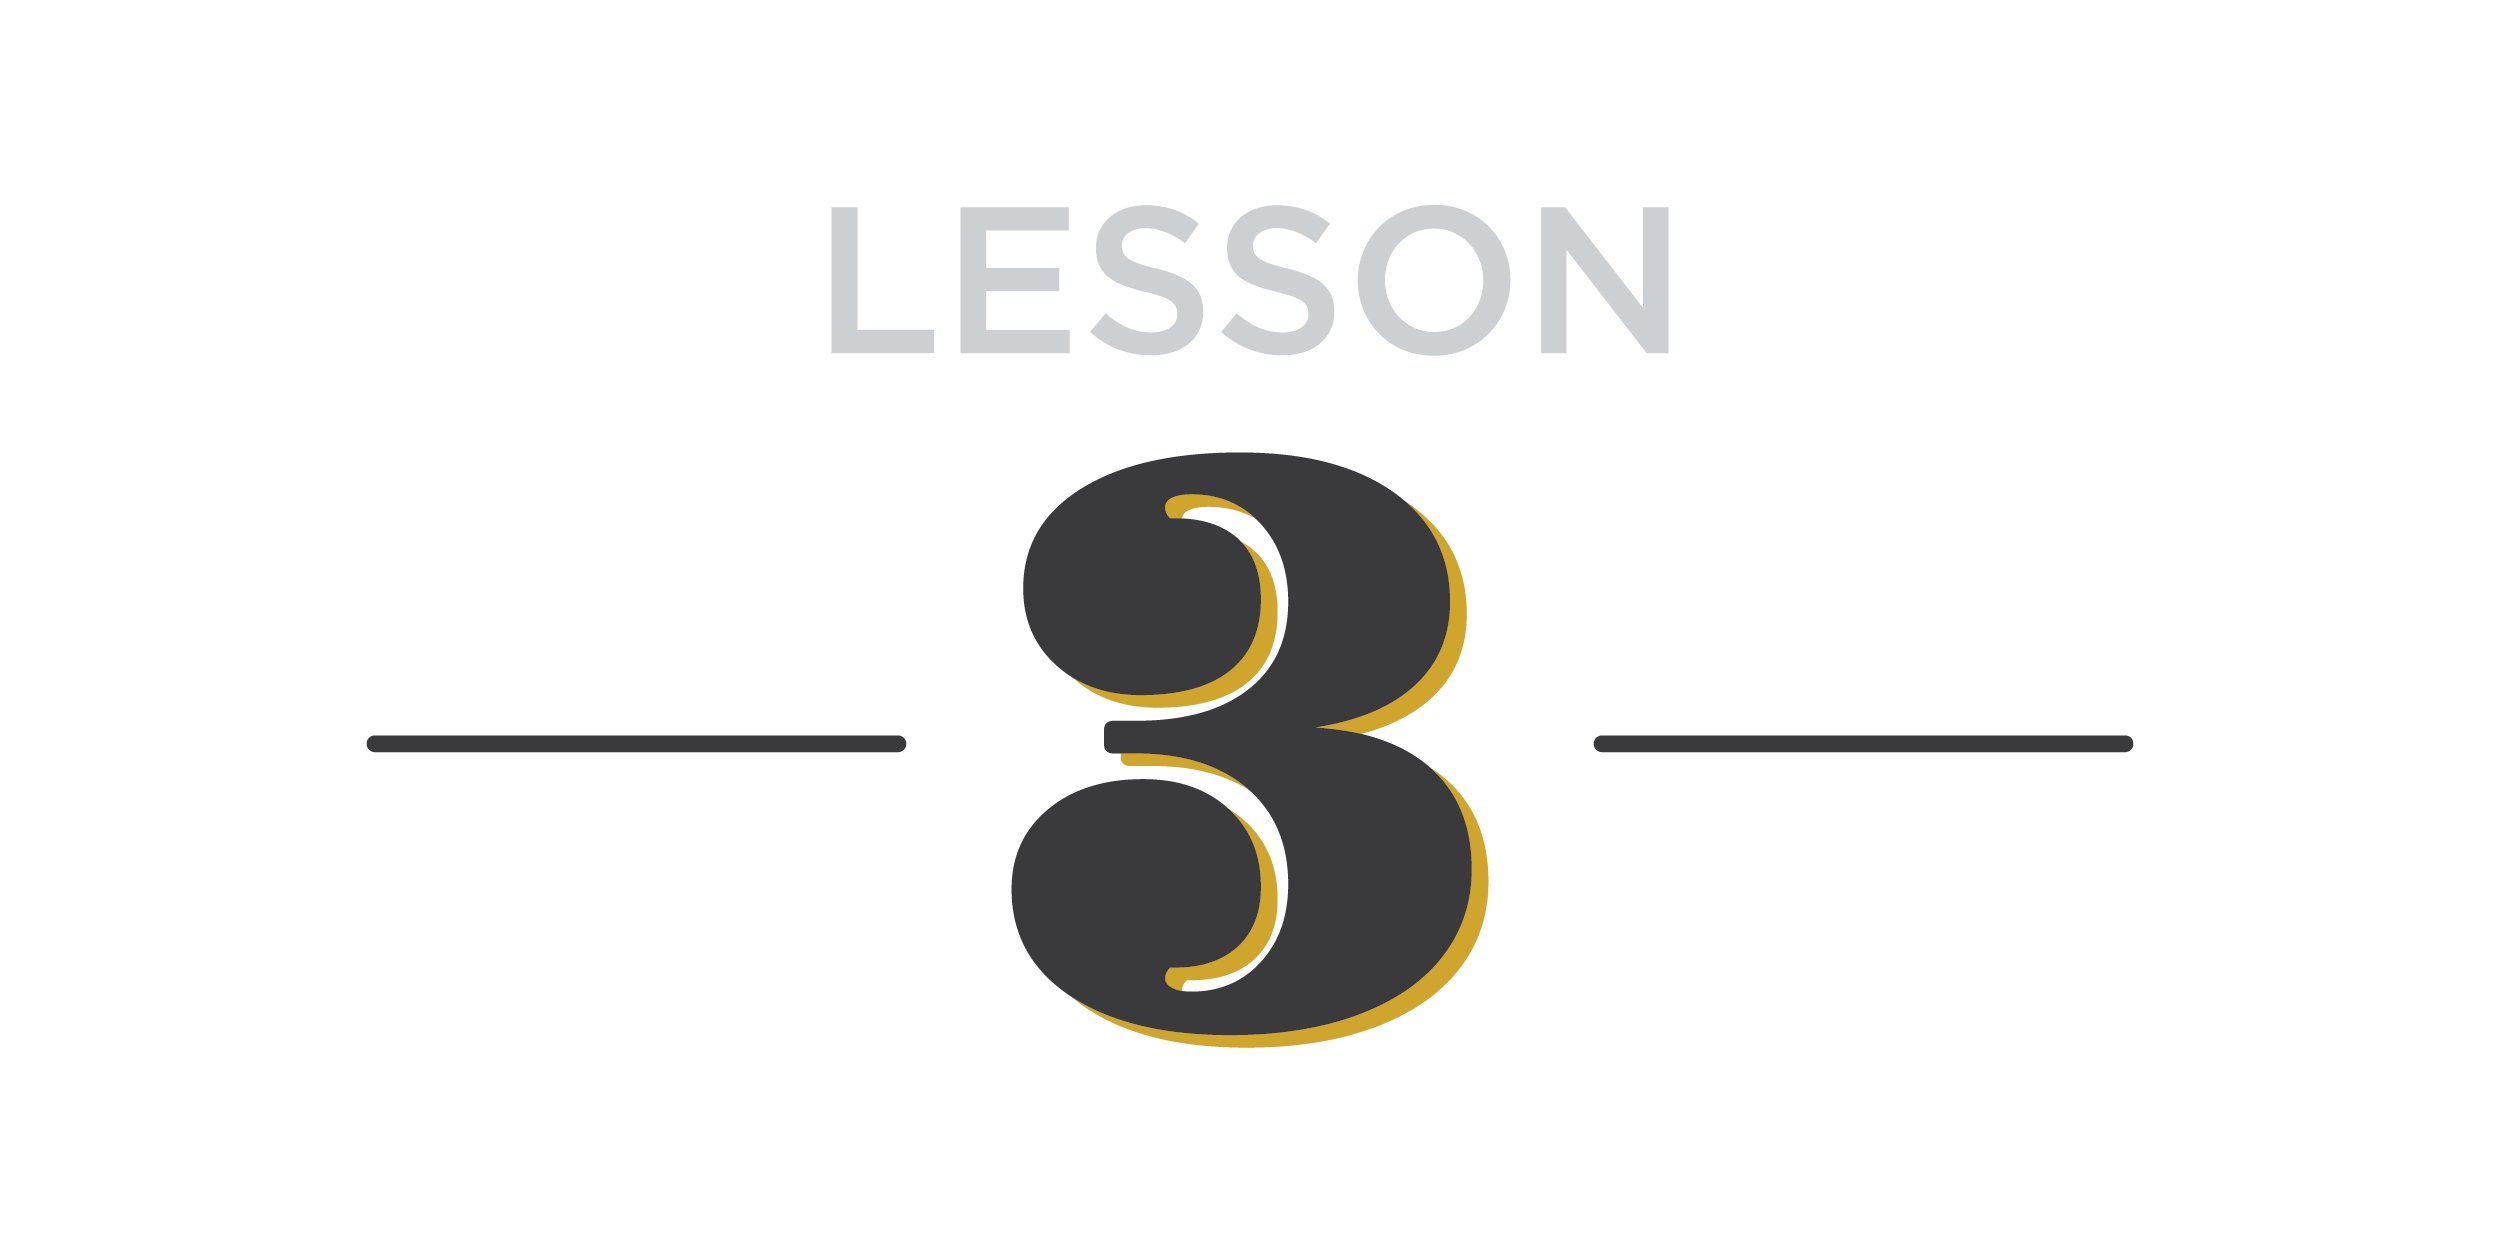 lesson3.png